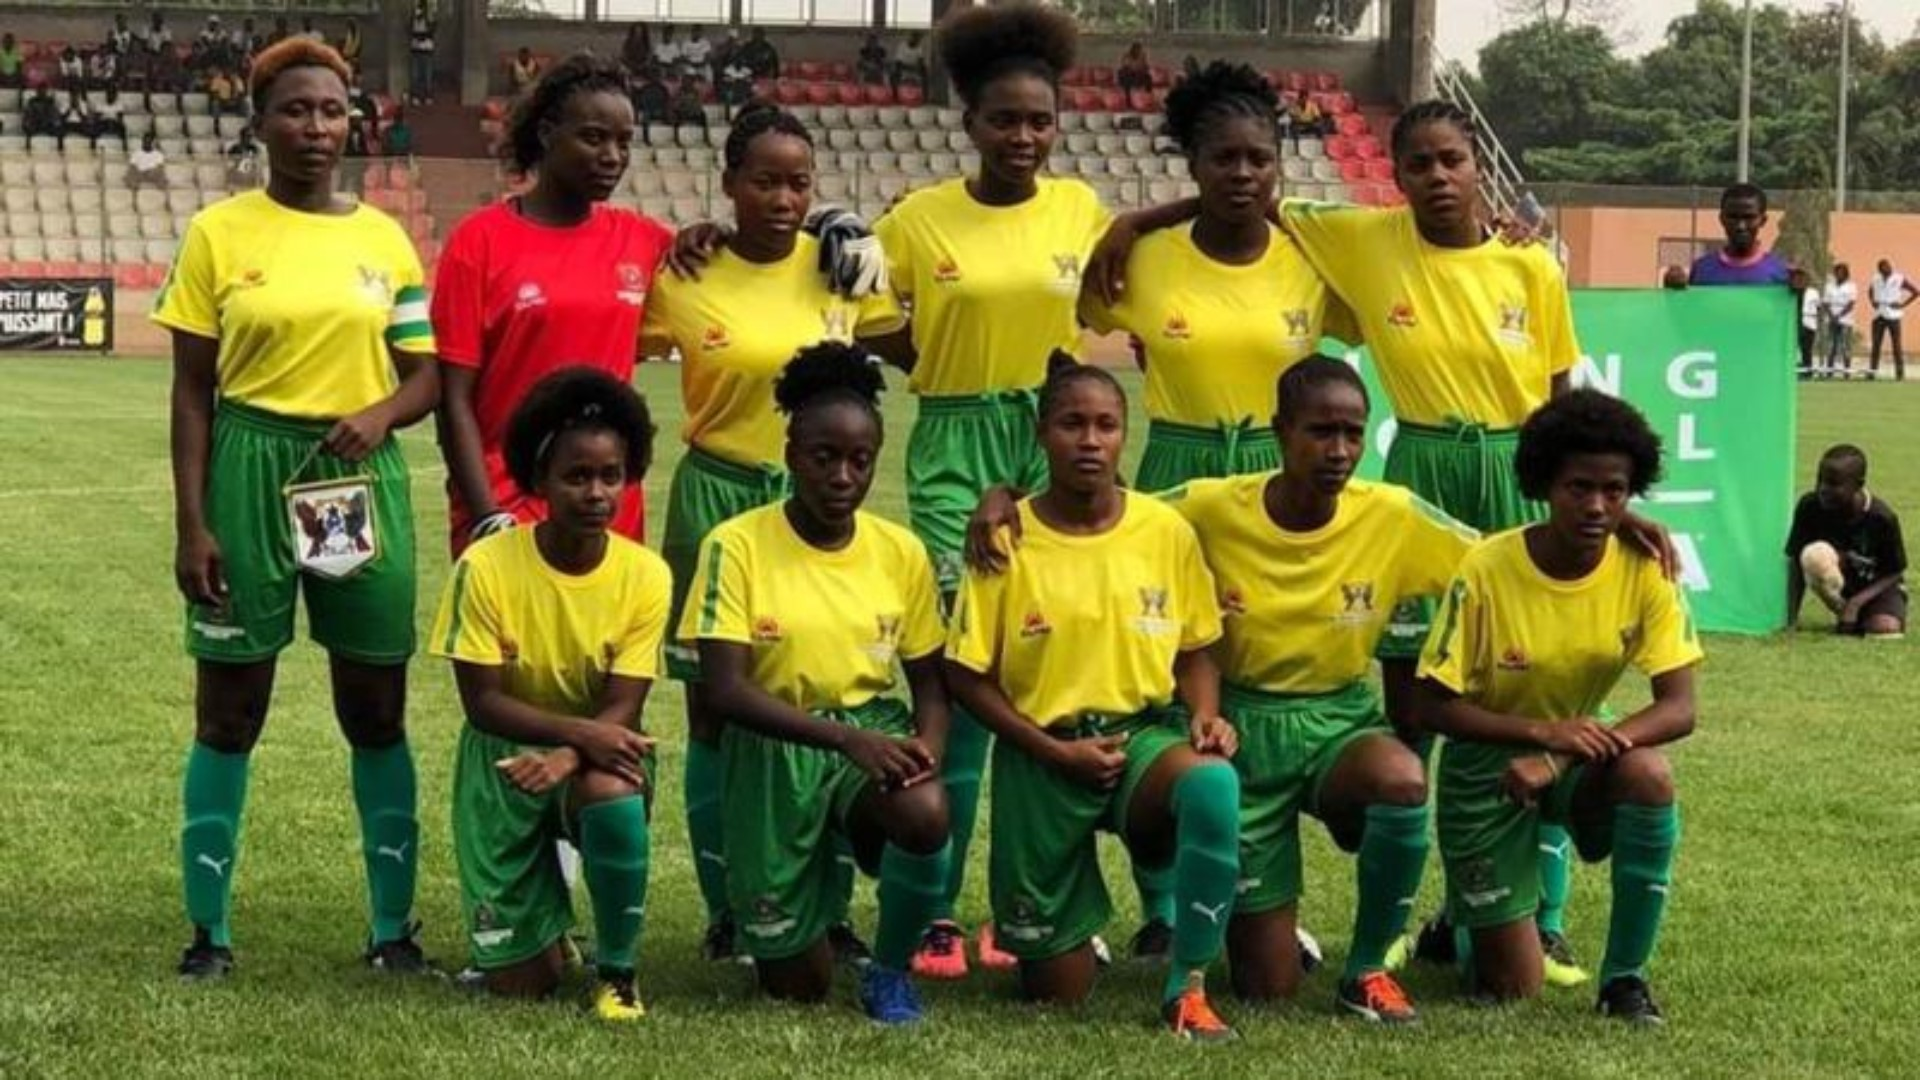 Coronavirus: Sao Tome and Principe U17 girls return home after being stranded in Cameroon